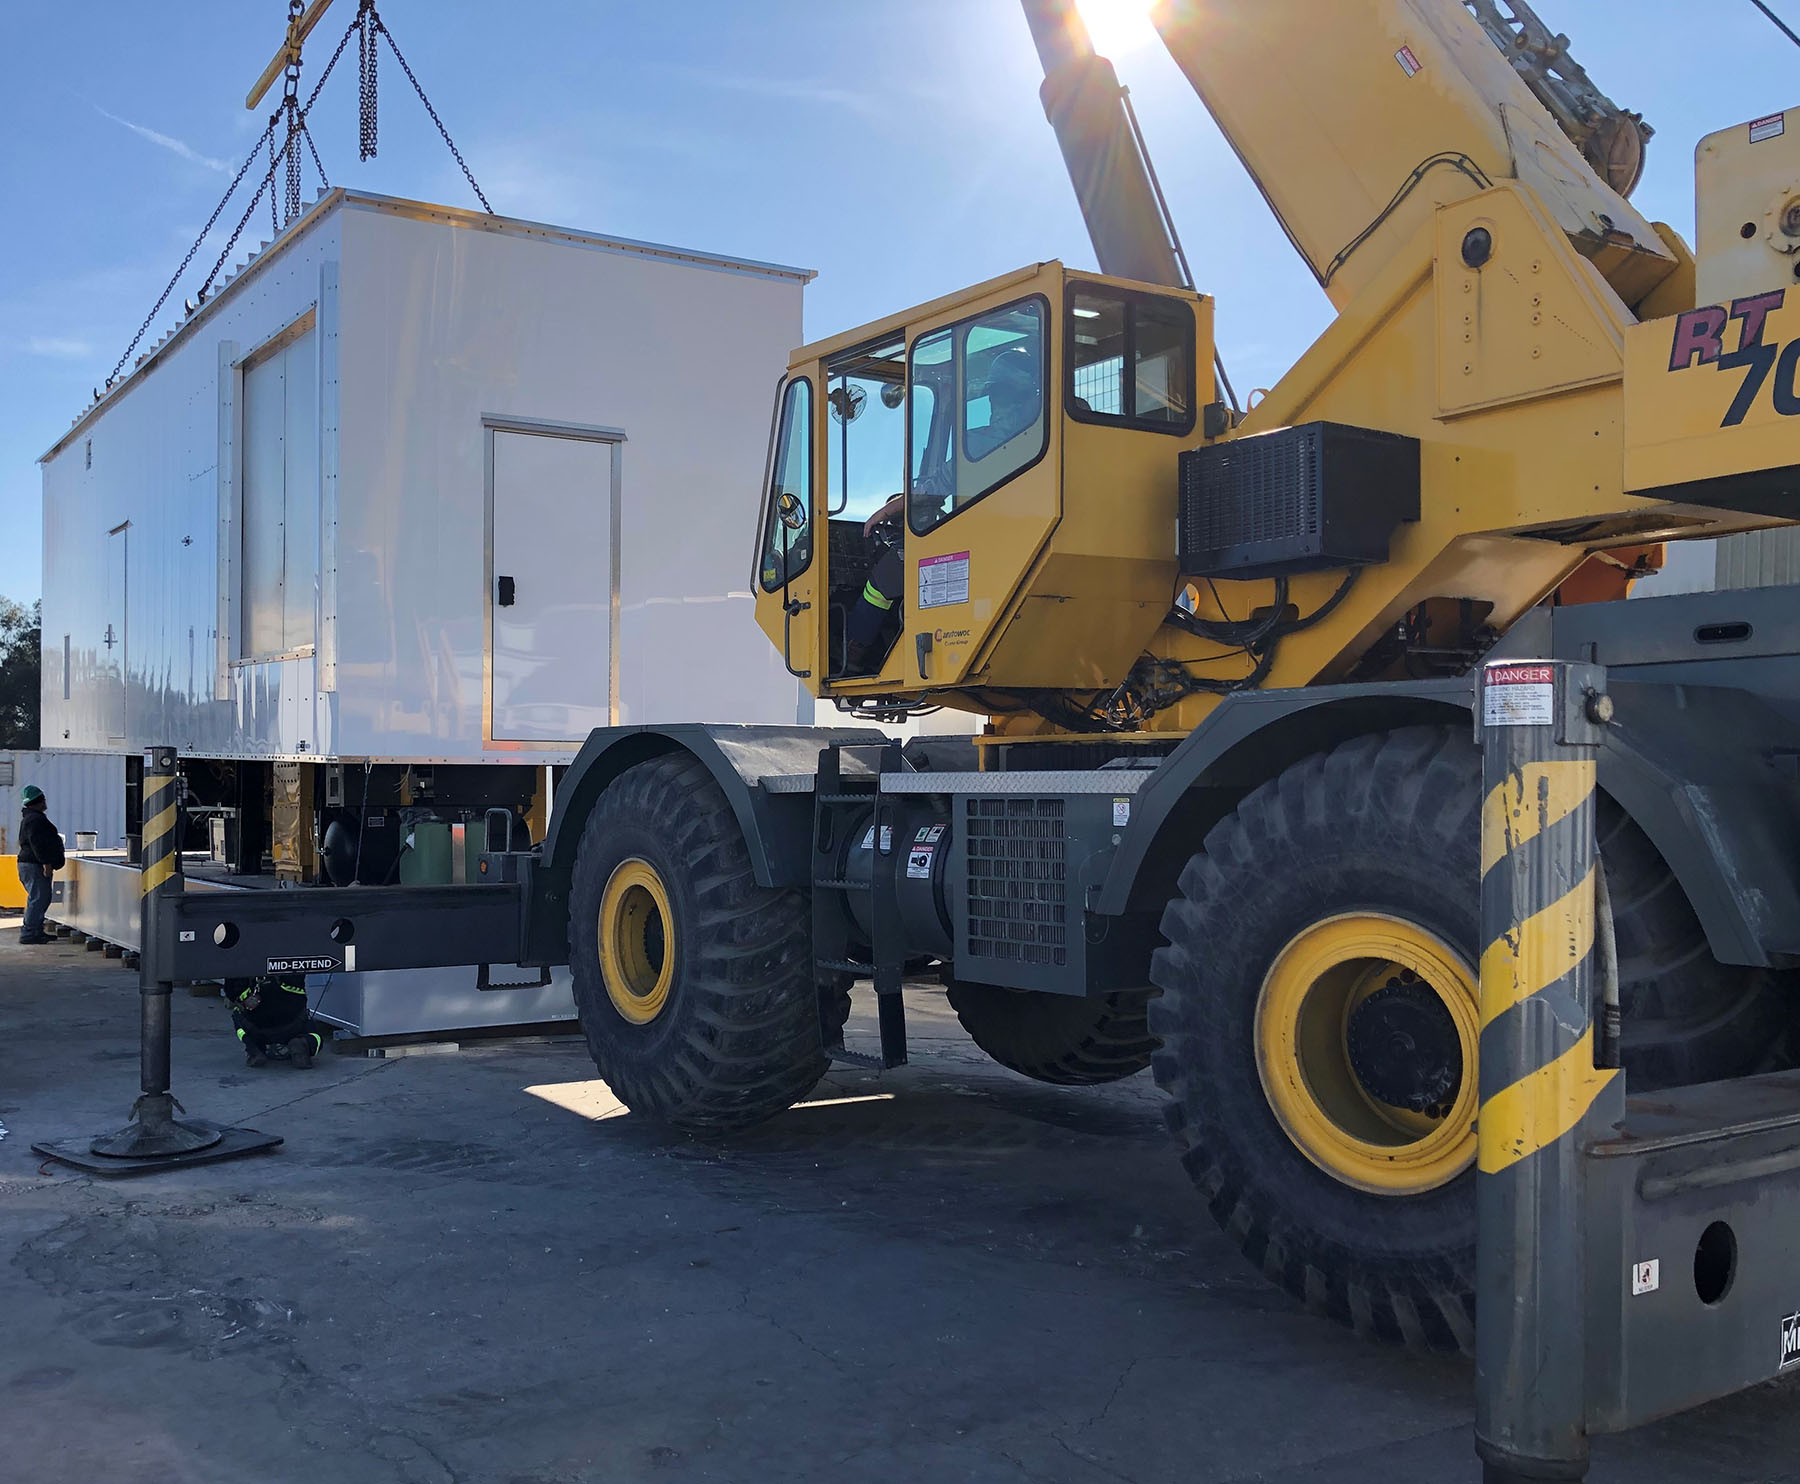 Custom-Generator-Enclosure-With-Sub-Base-Fuel-Tank-Lifted-Safely